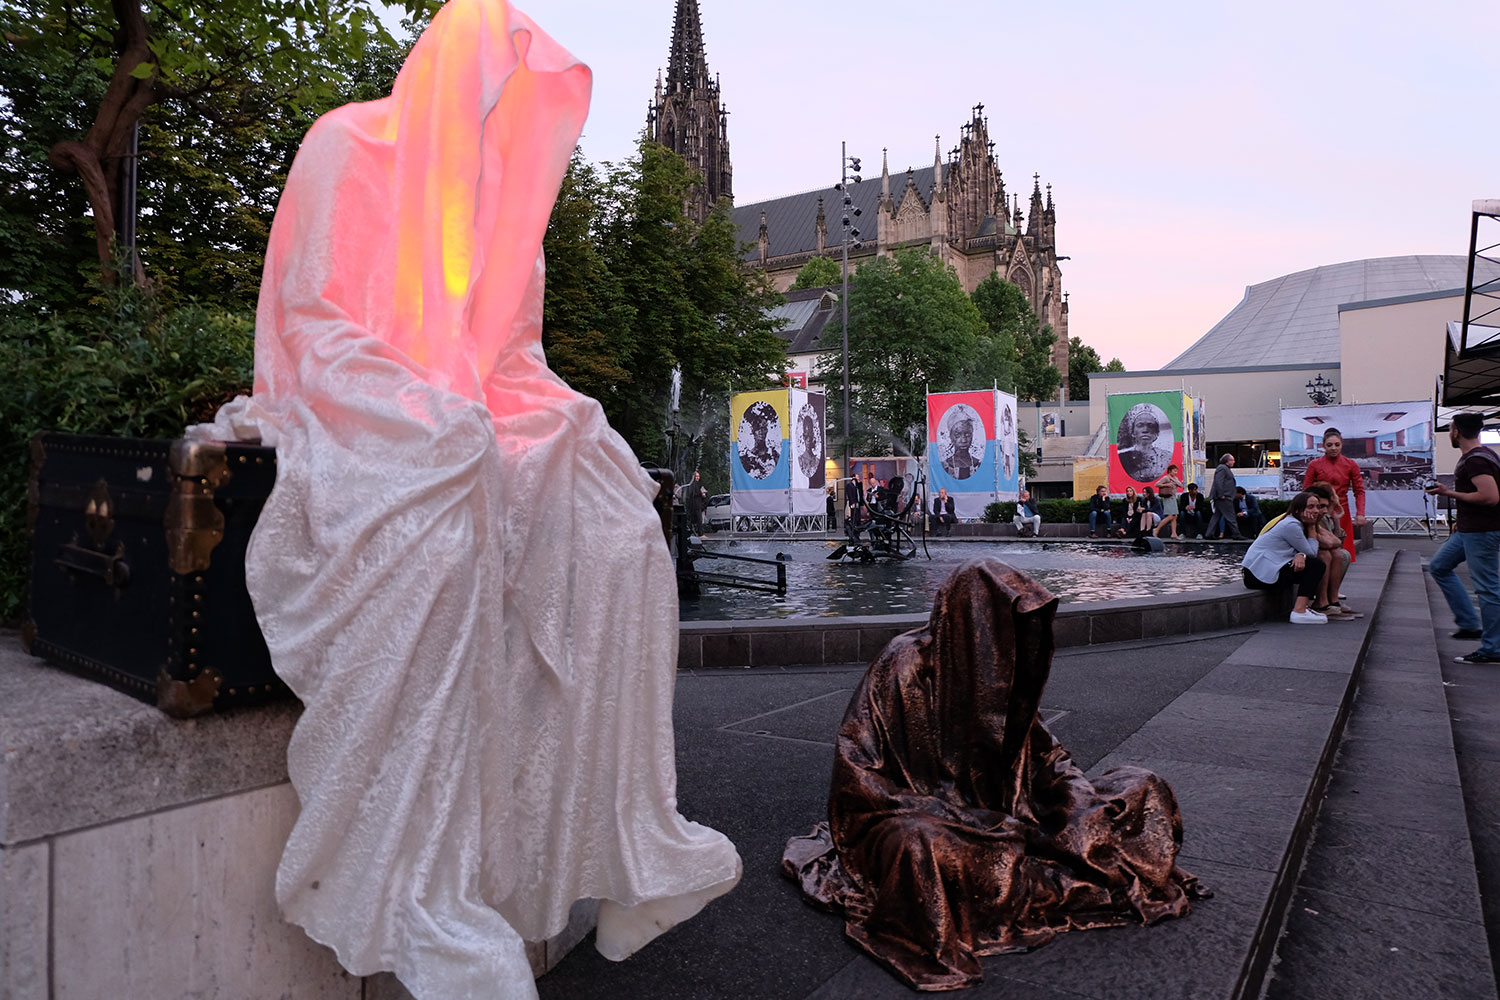 artbasel-swiss-scope-art-guardians-of-time-manfred-kili-kielnhofer-large-scale-contemporary-art-design-sculpture-statue-arts-arte-4761